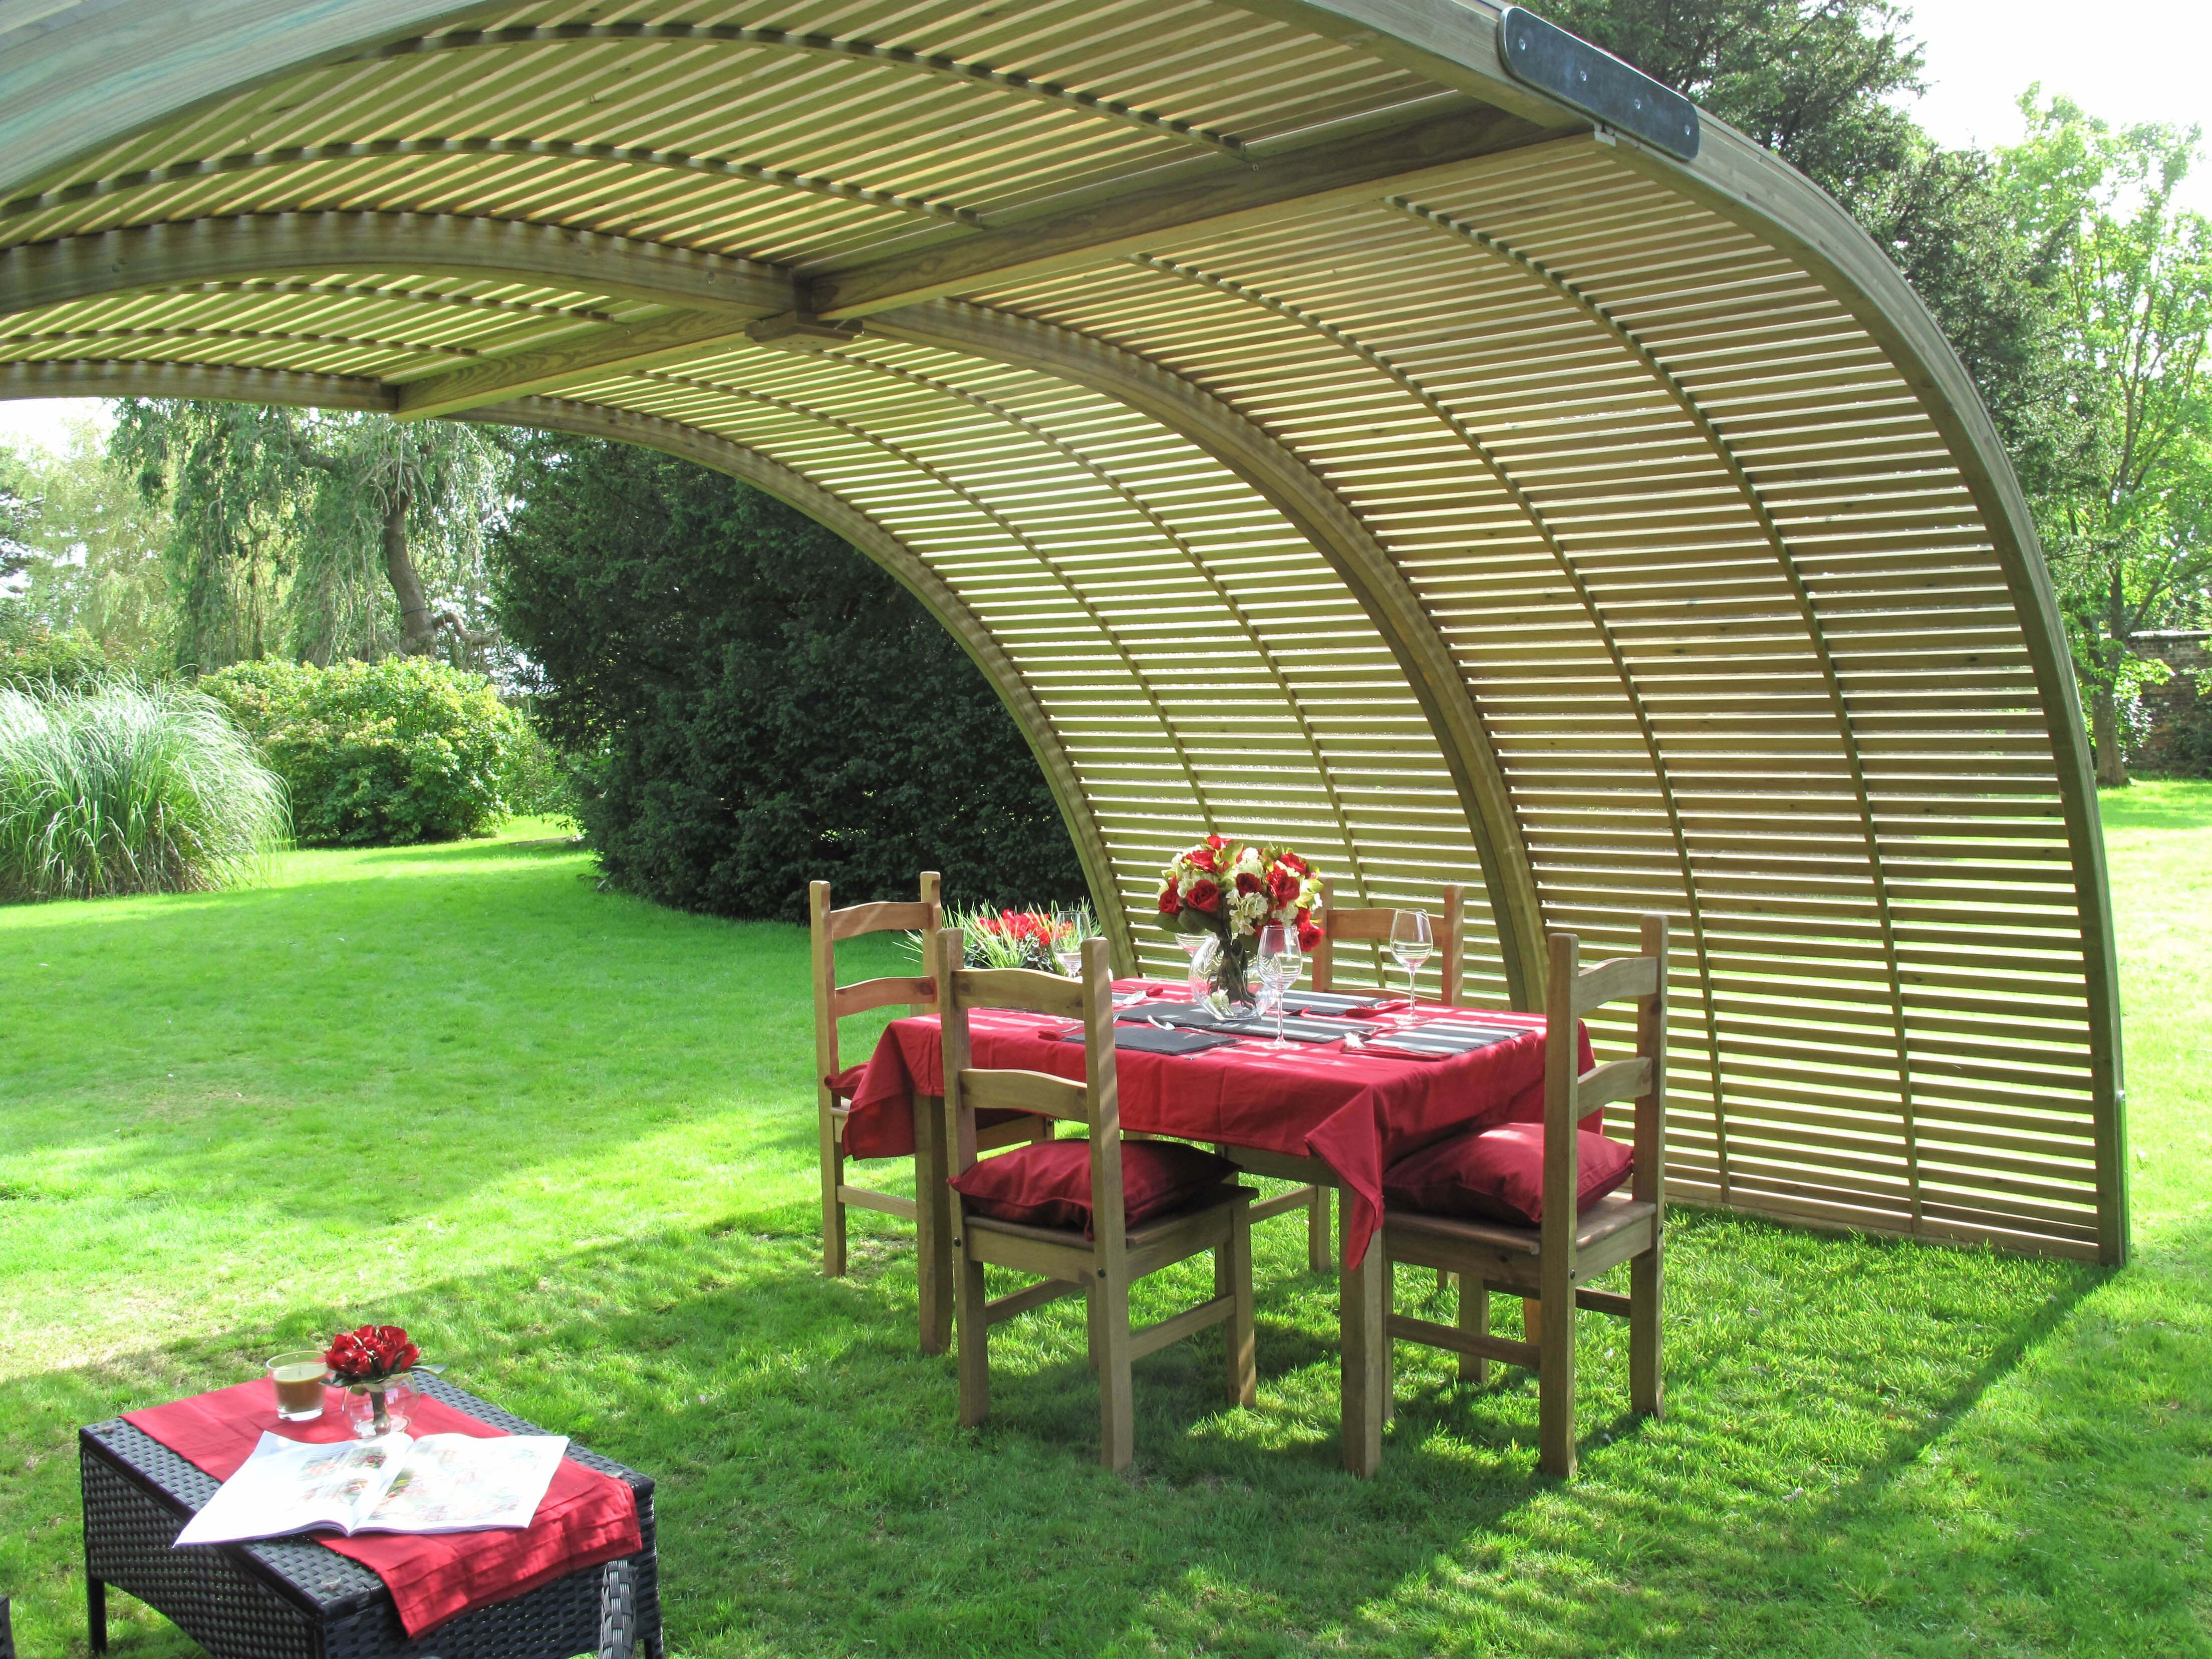 A Jacksons Fencing Garden Structure #shelter